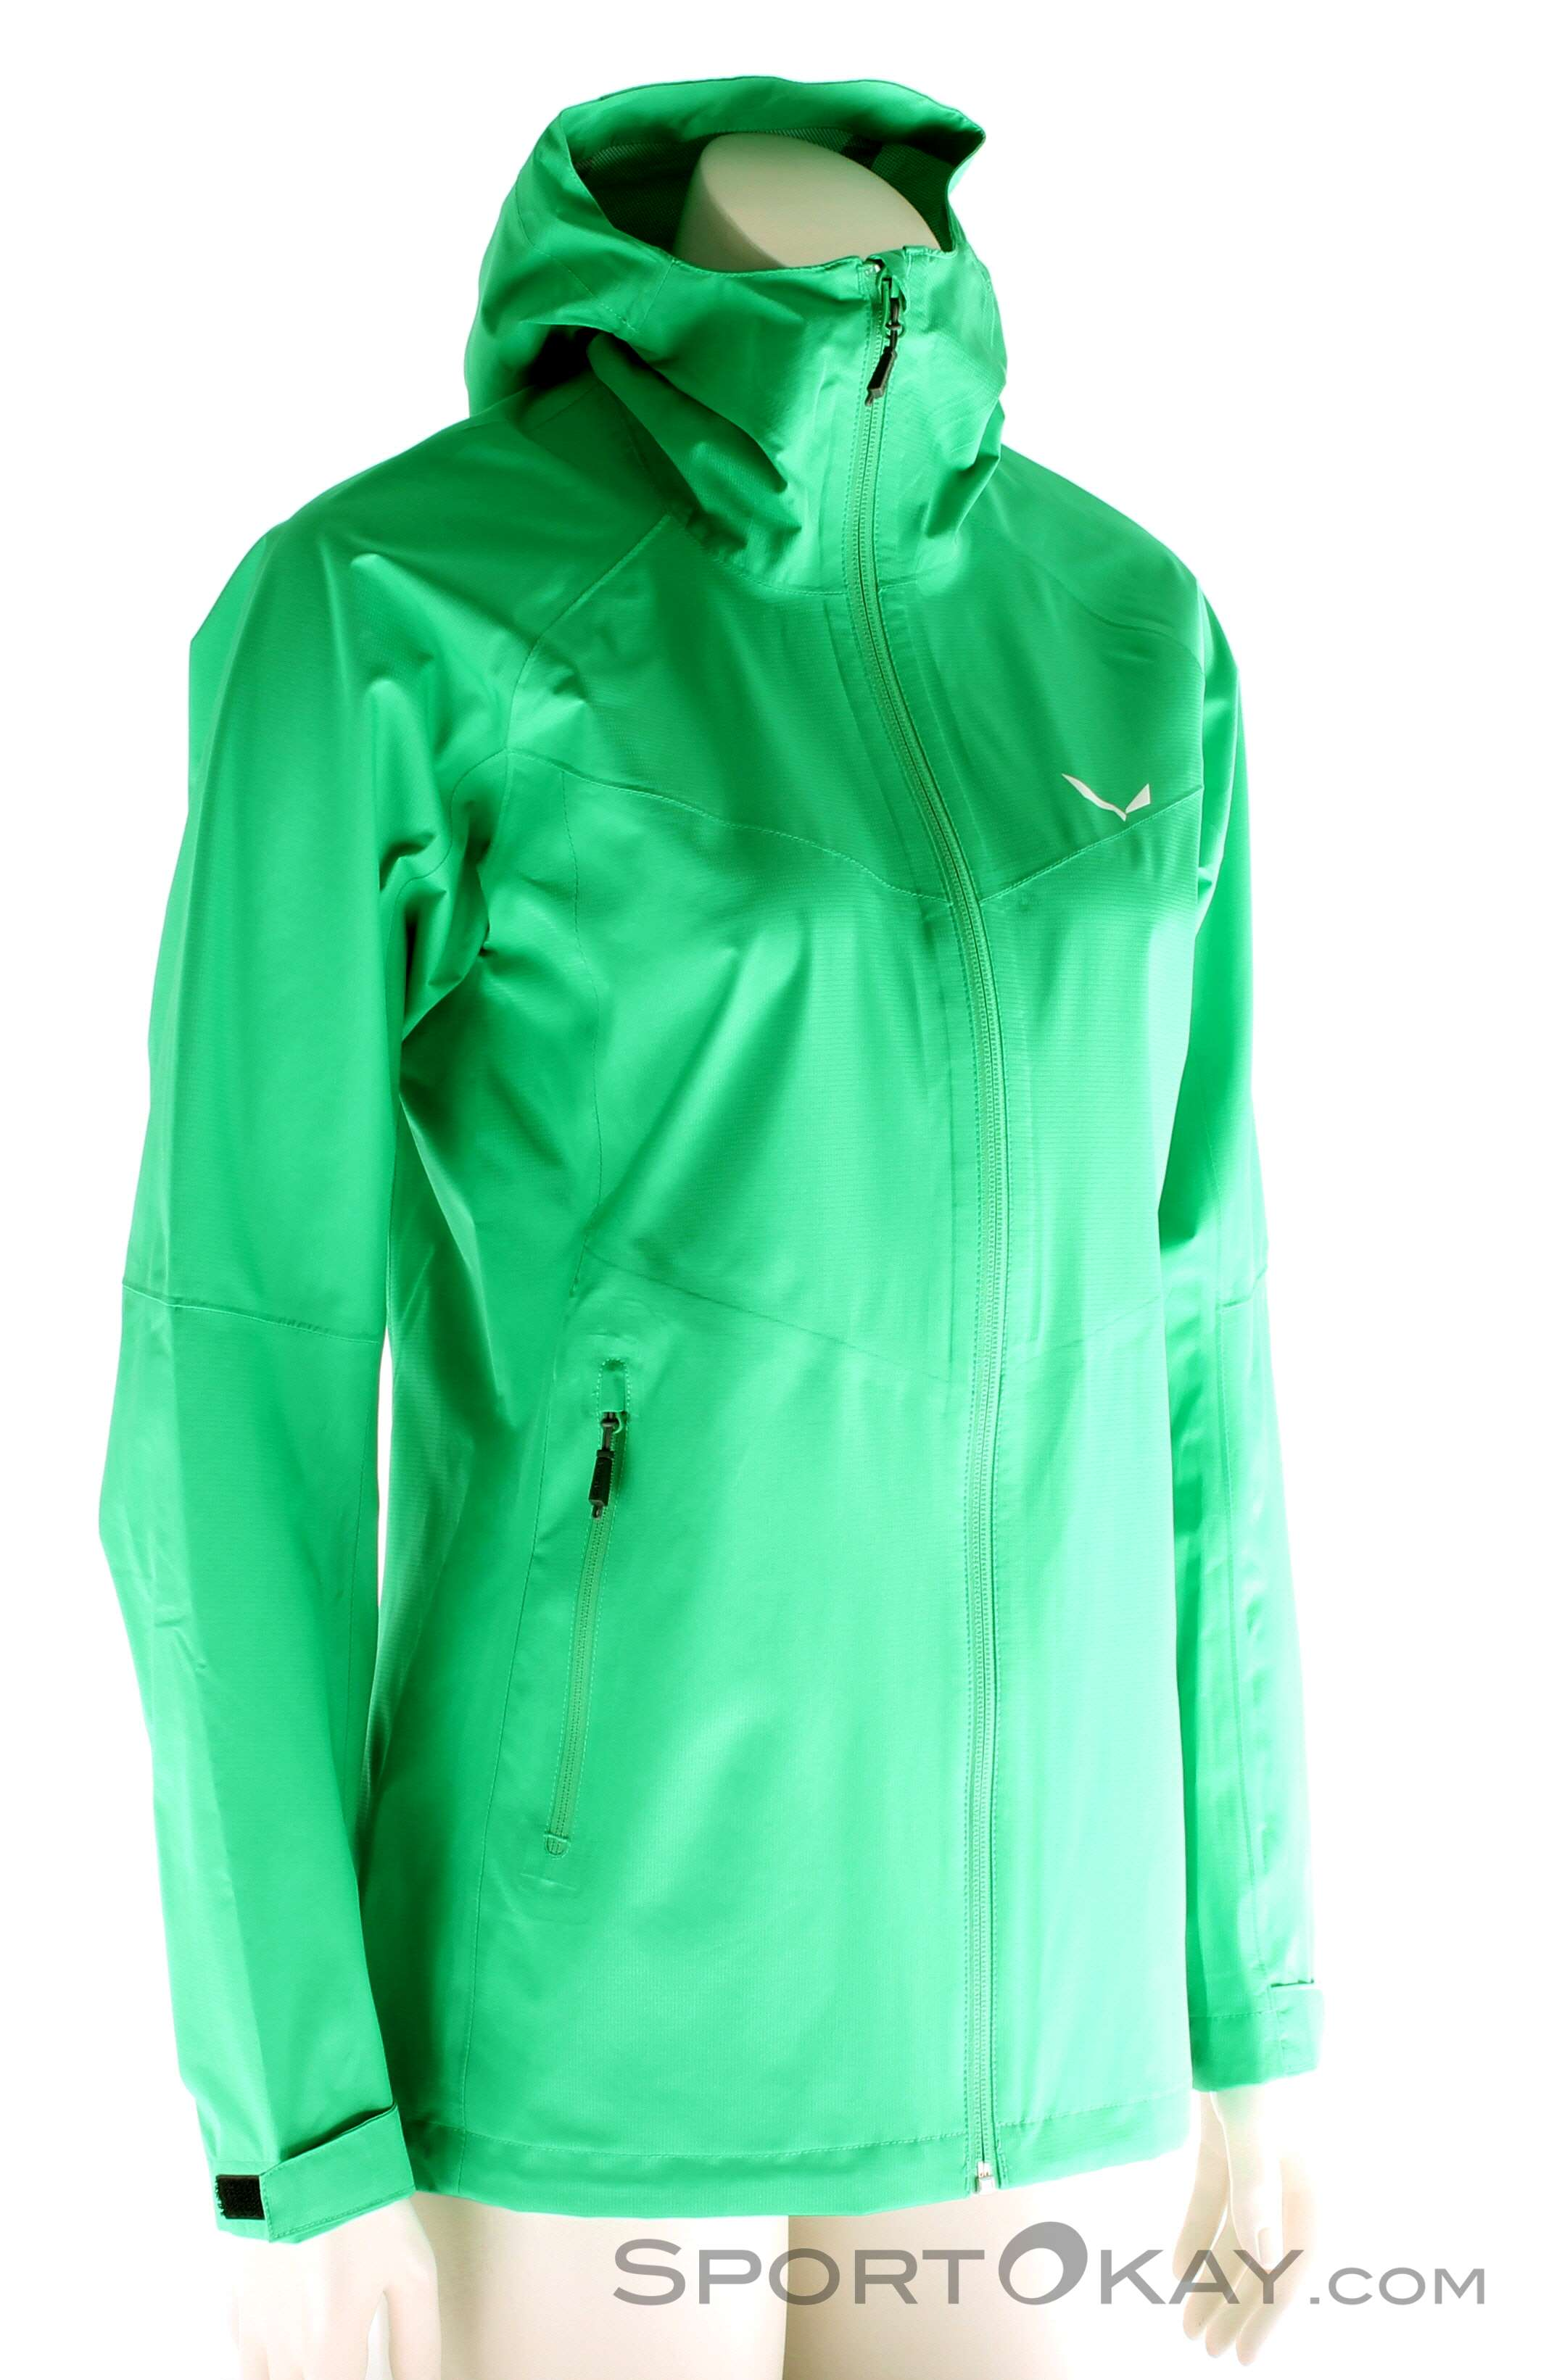 Aqua Ptx Jacket 3 Puez Womens Salewa Outdoor thxBsQrdCo